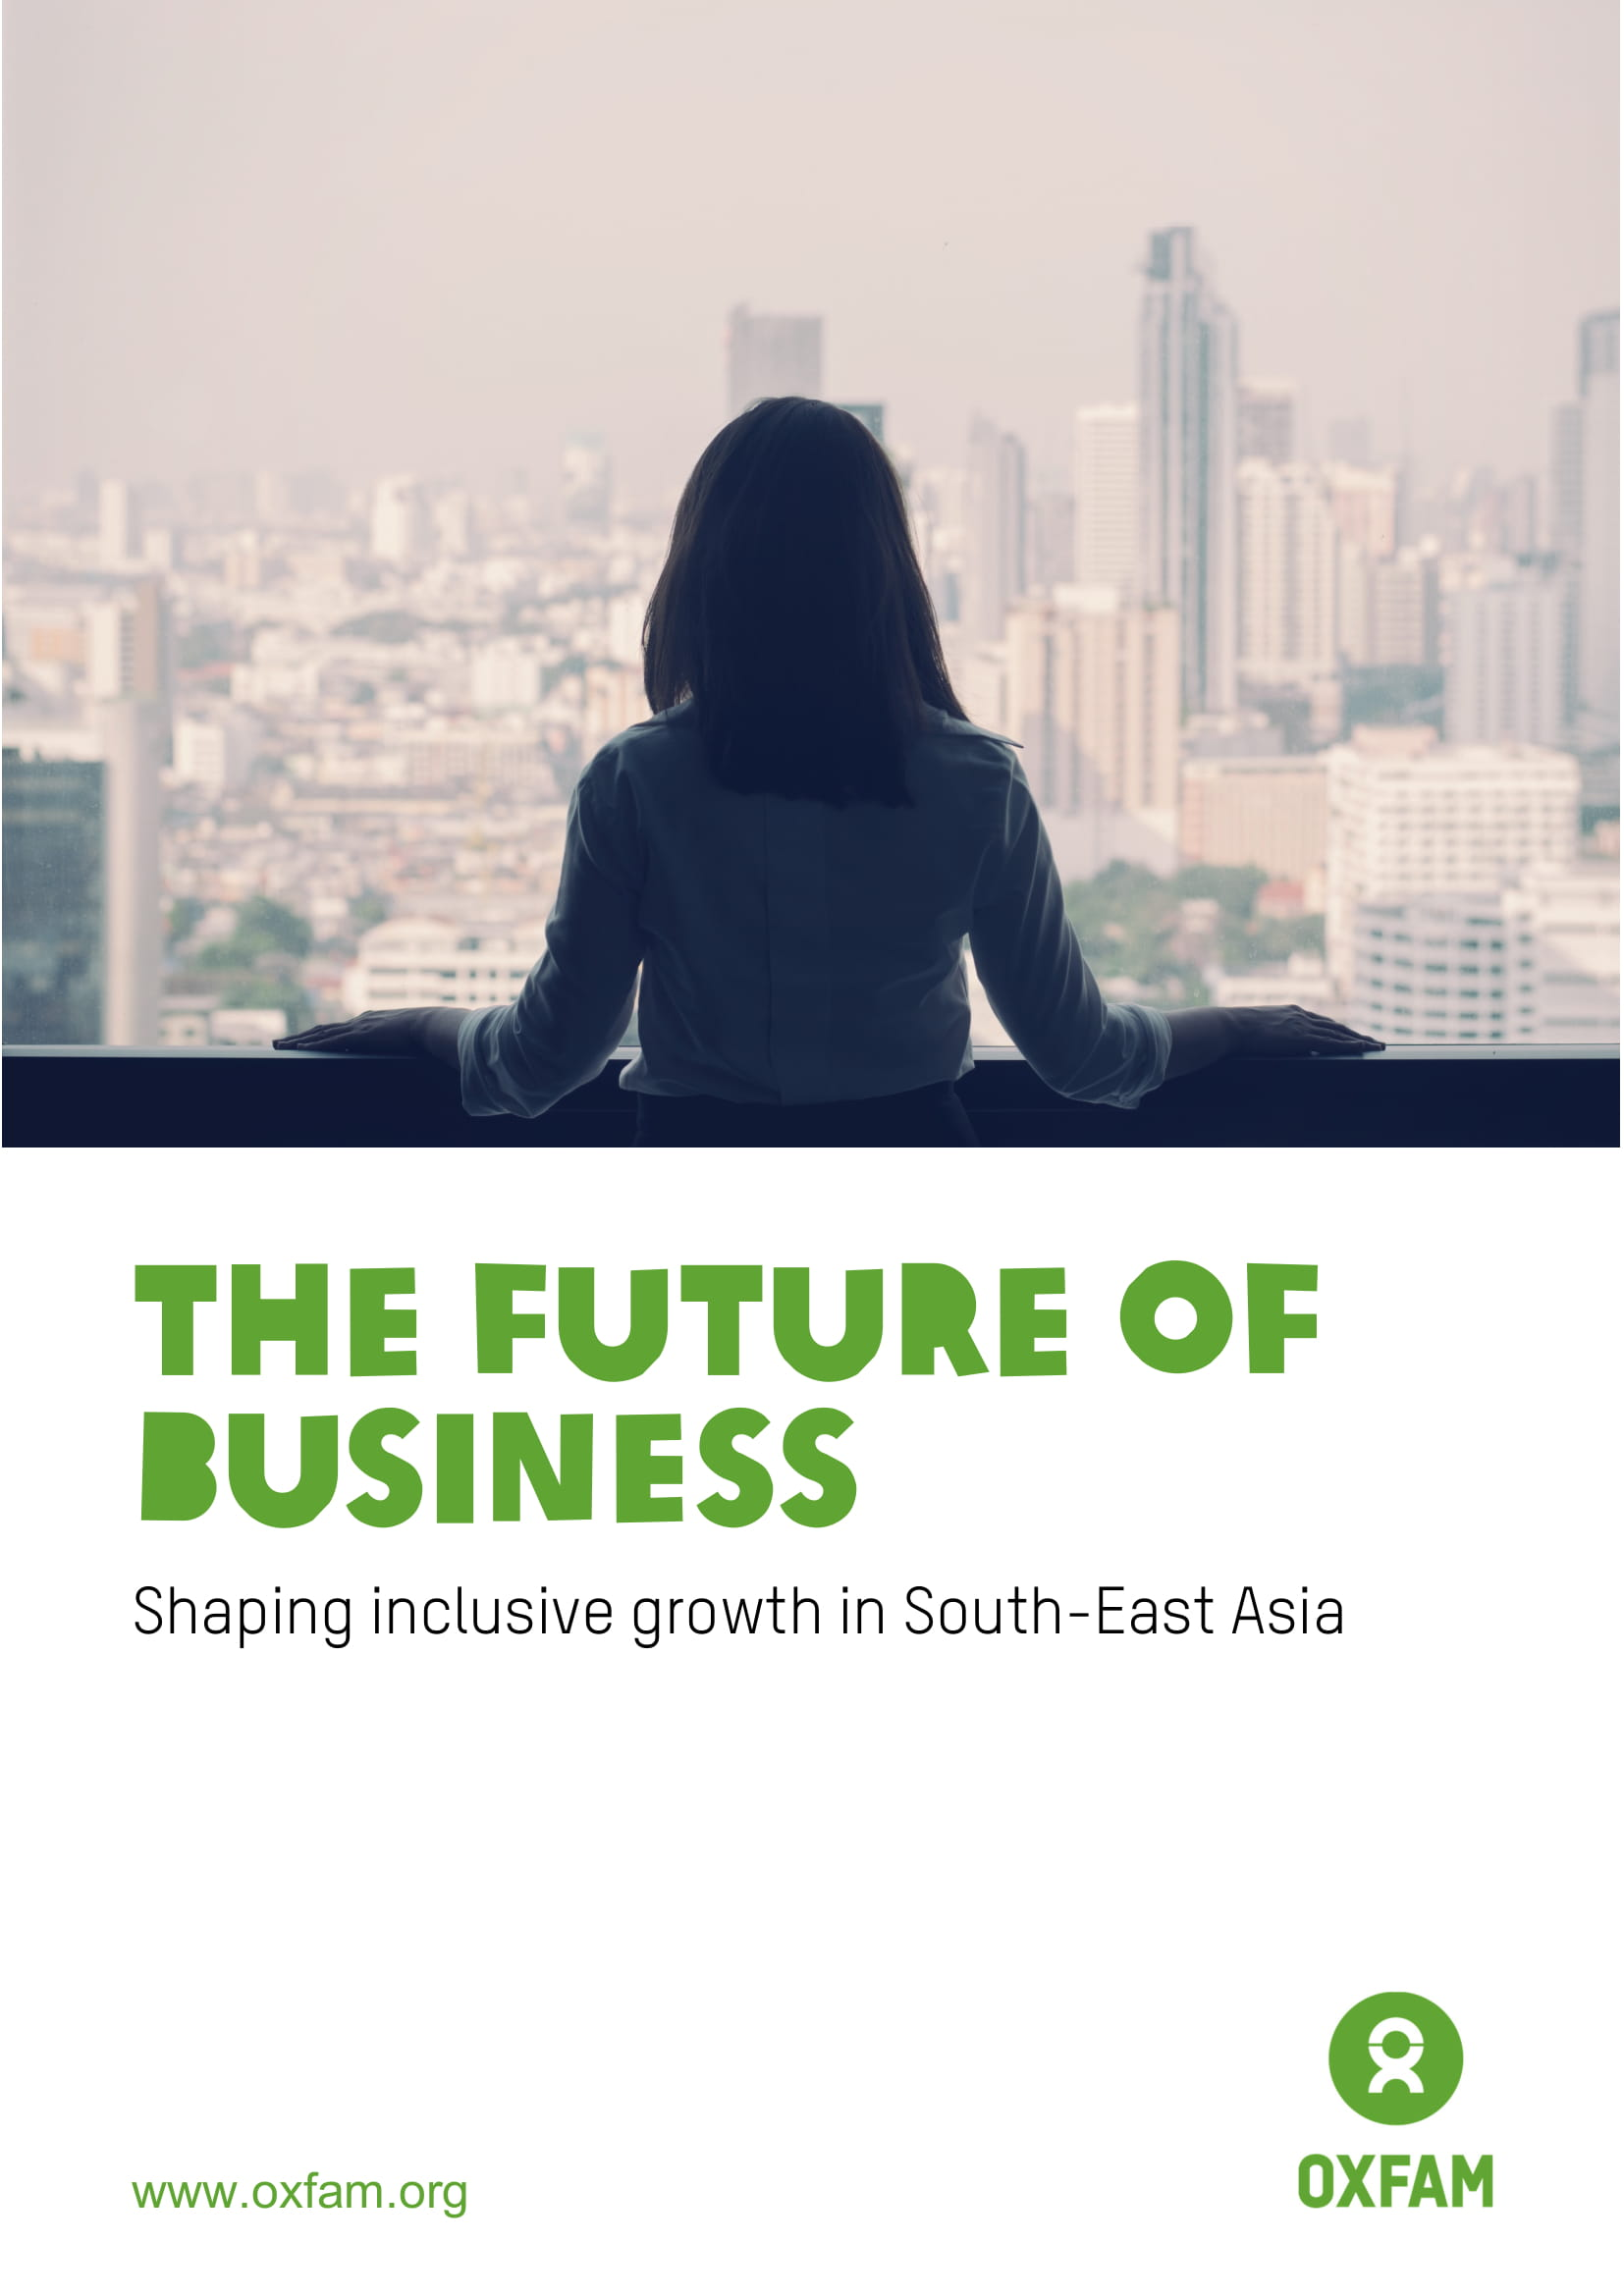 Oxfam Report highlights the potential of business to foster growth and equality